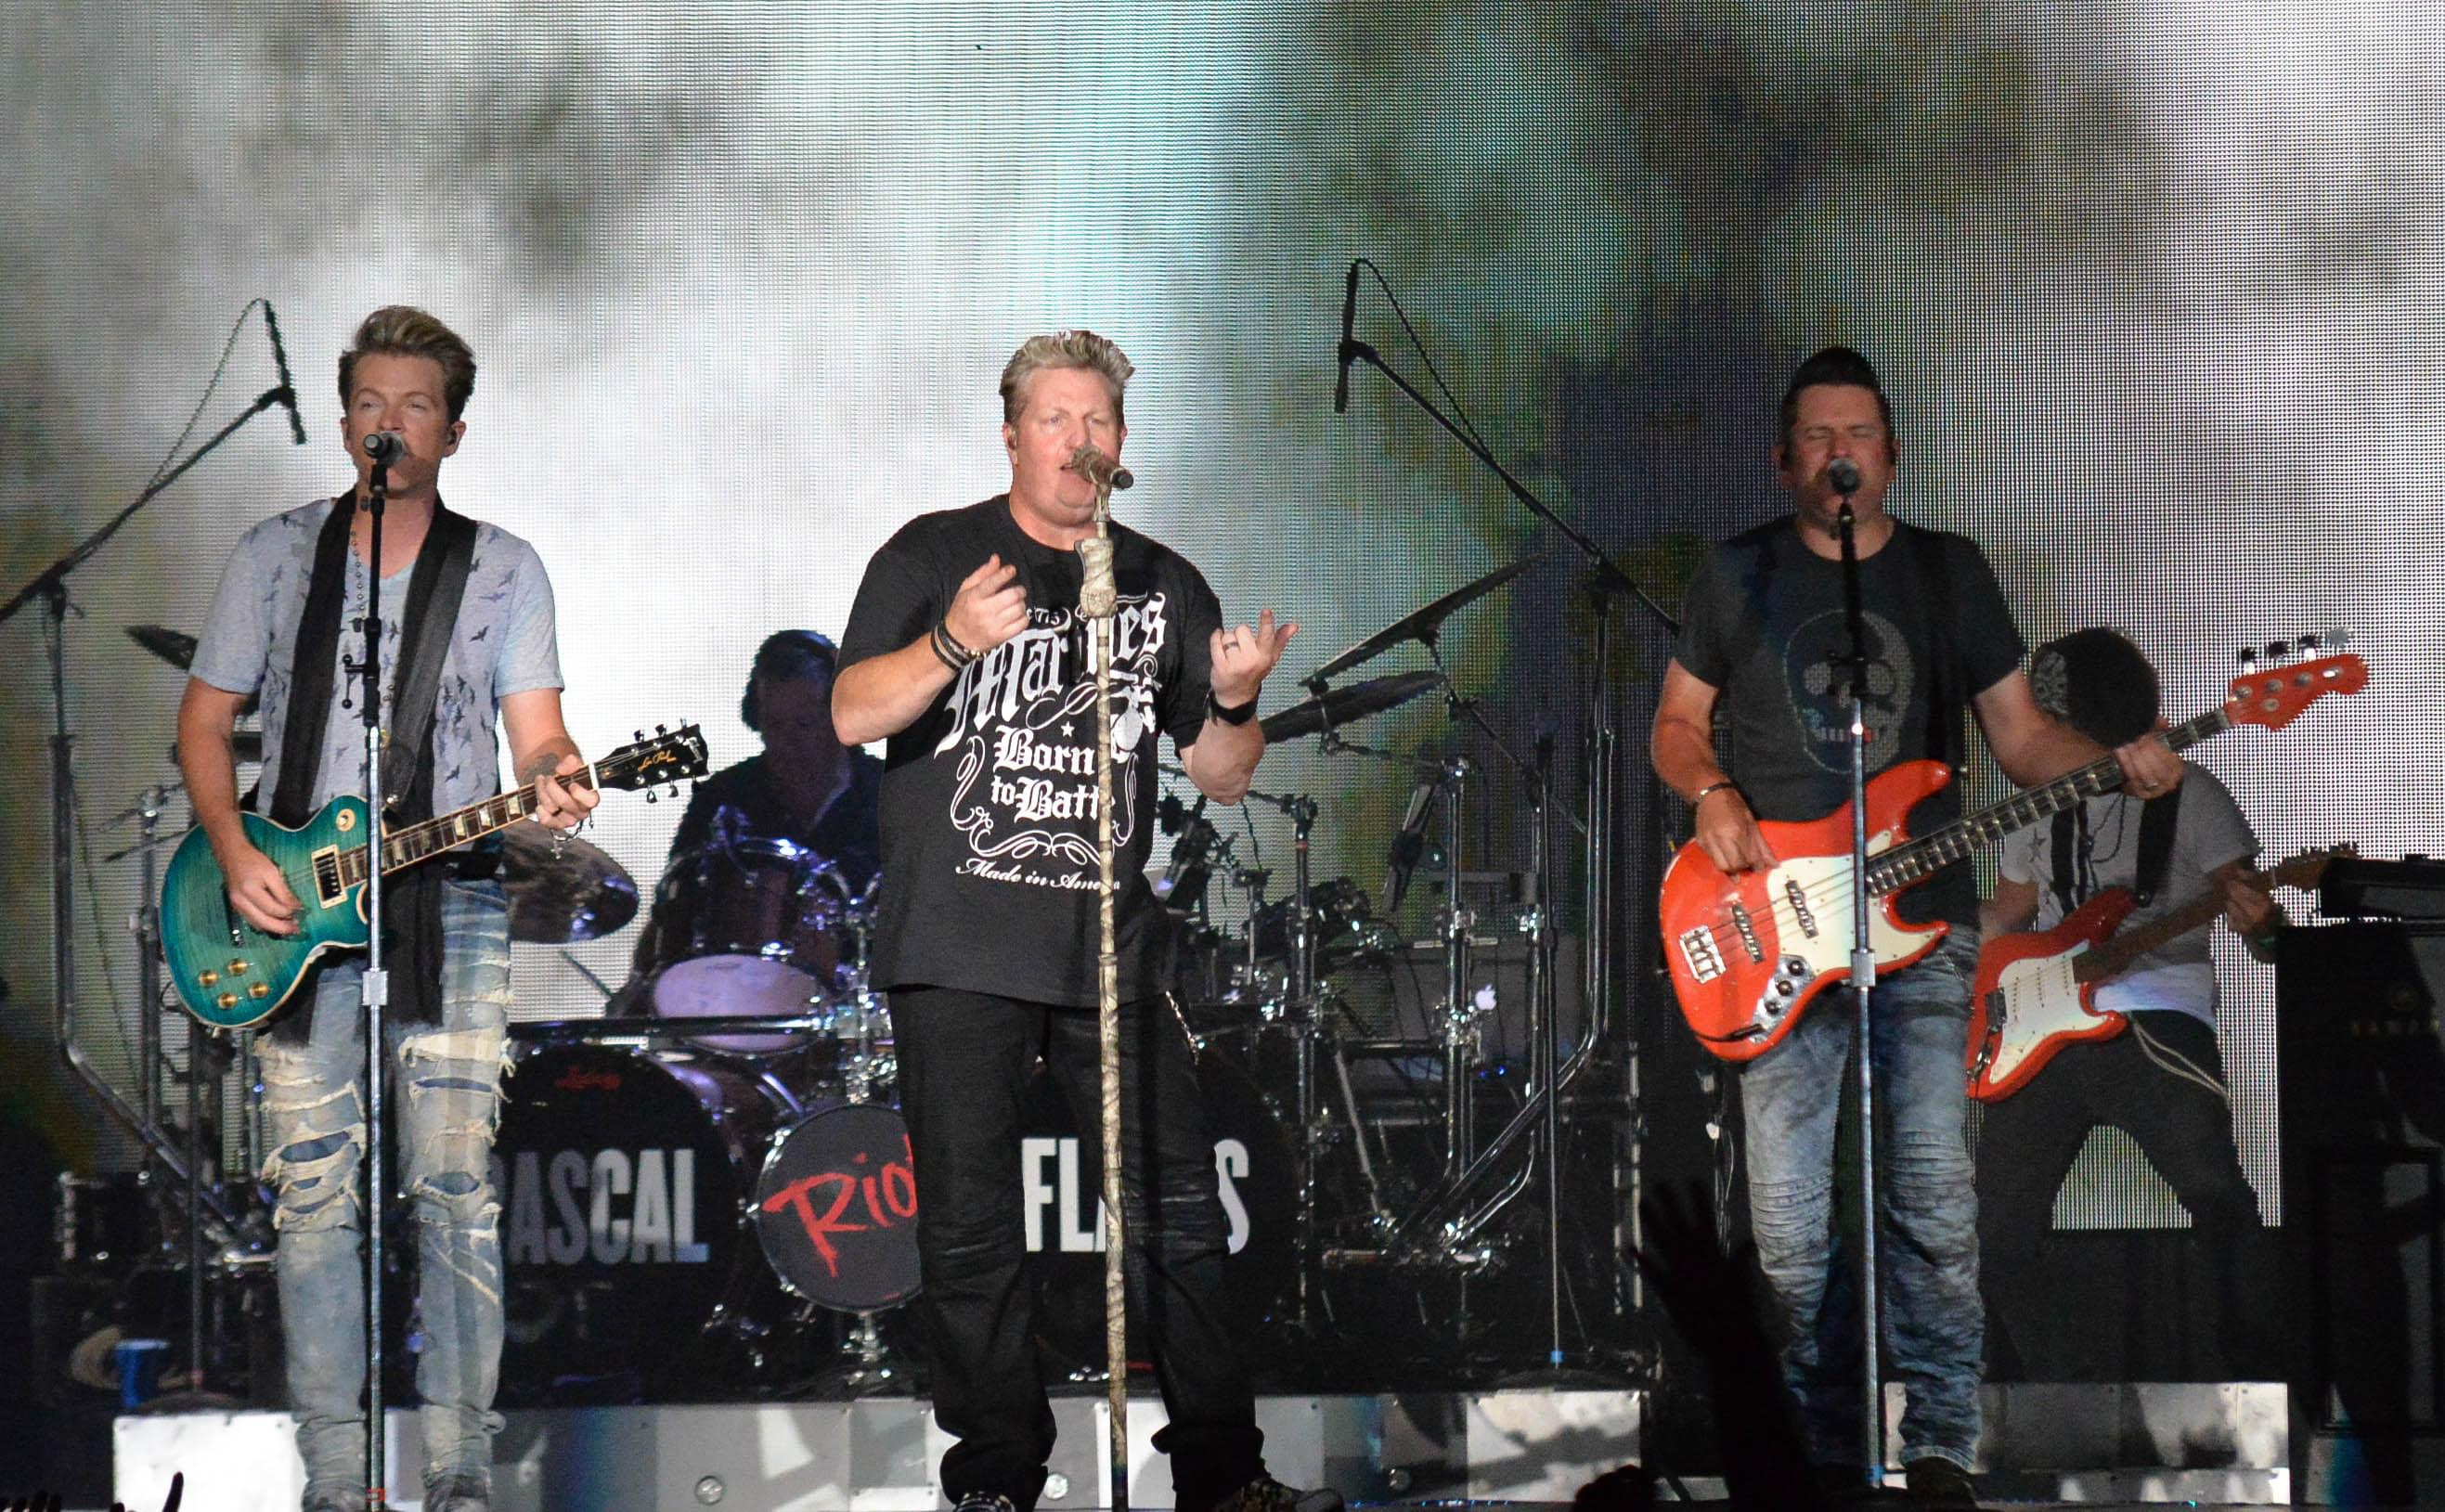 Rascal Flatts Concert Ends Abruptly After Bomb Threat in Indiana!